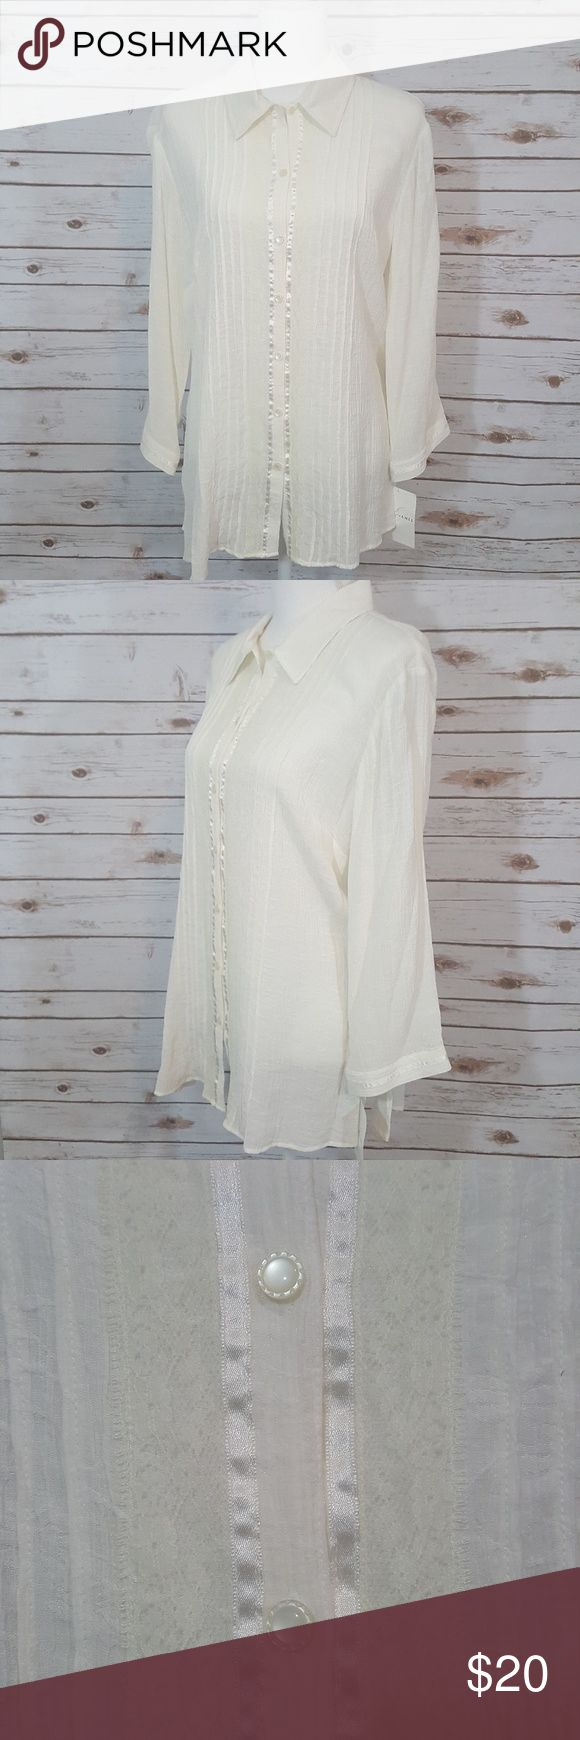 NWT Emma James Vintage inspired Lace Detail No flaws NWT perfect under a blazer. MAKE AN OFFER. BUNDLE AND SAVE Emma James Tops Button Down Shirts